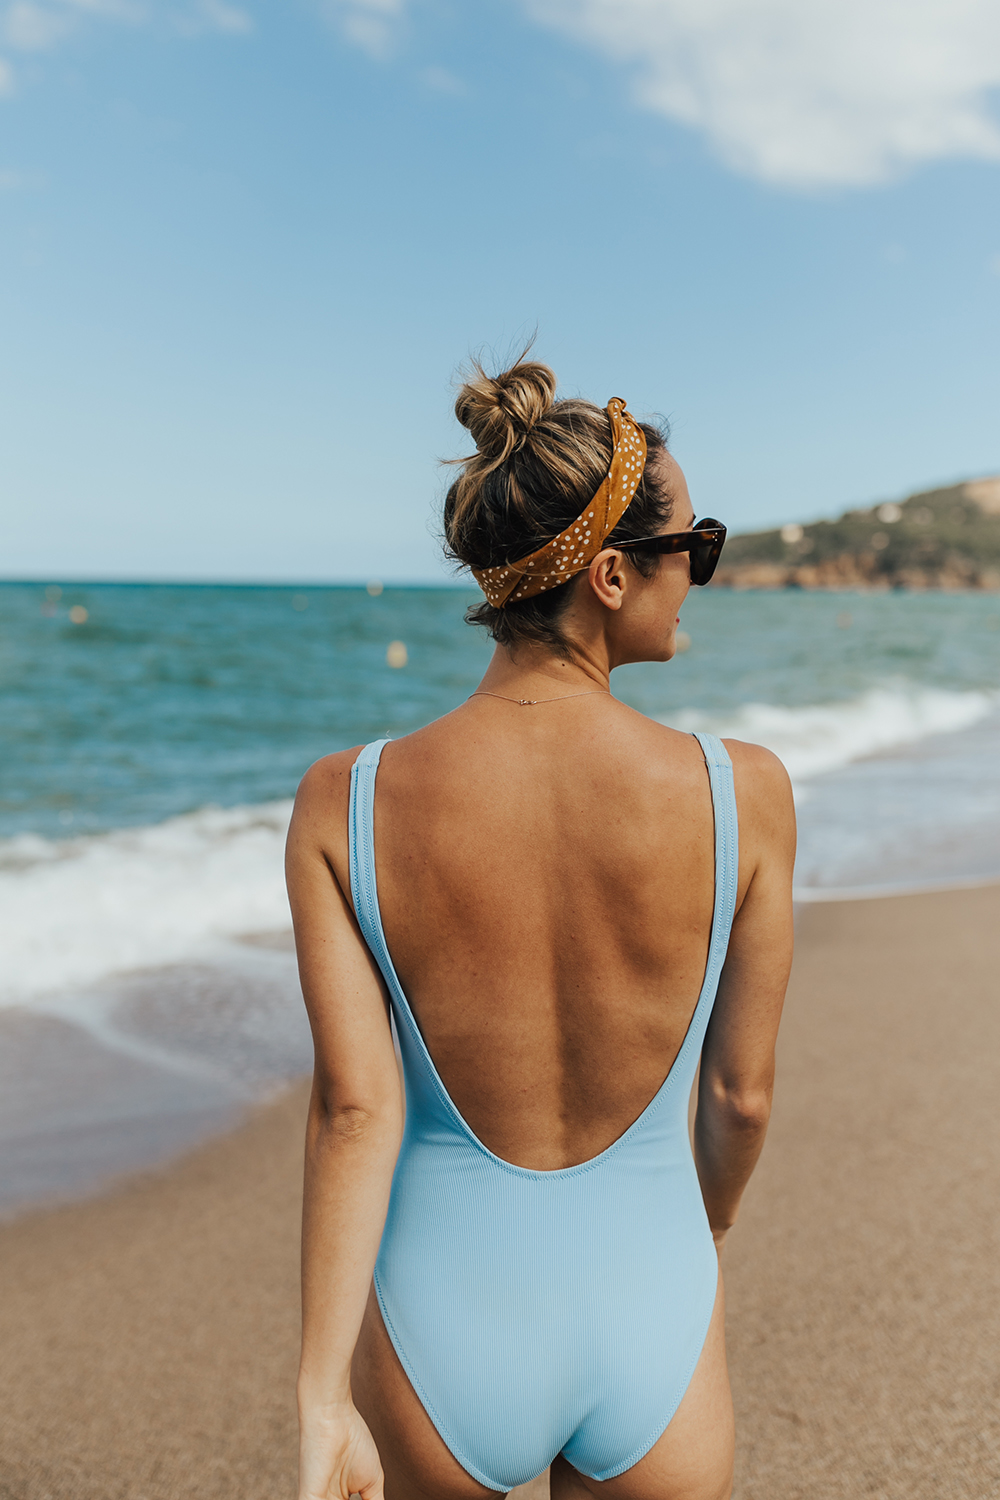 livvyland-blog-olivia-watson-fashion-travel-blogger-shop-spring-solid-and-striped-sophia-one-piece-swimsuit-periwinkle-blue-costa-brava-pals-beach-barecelona-spain-3